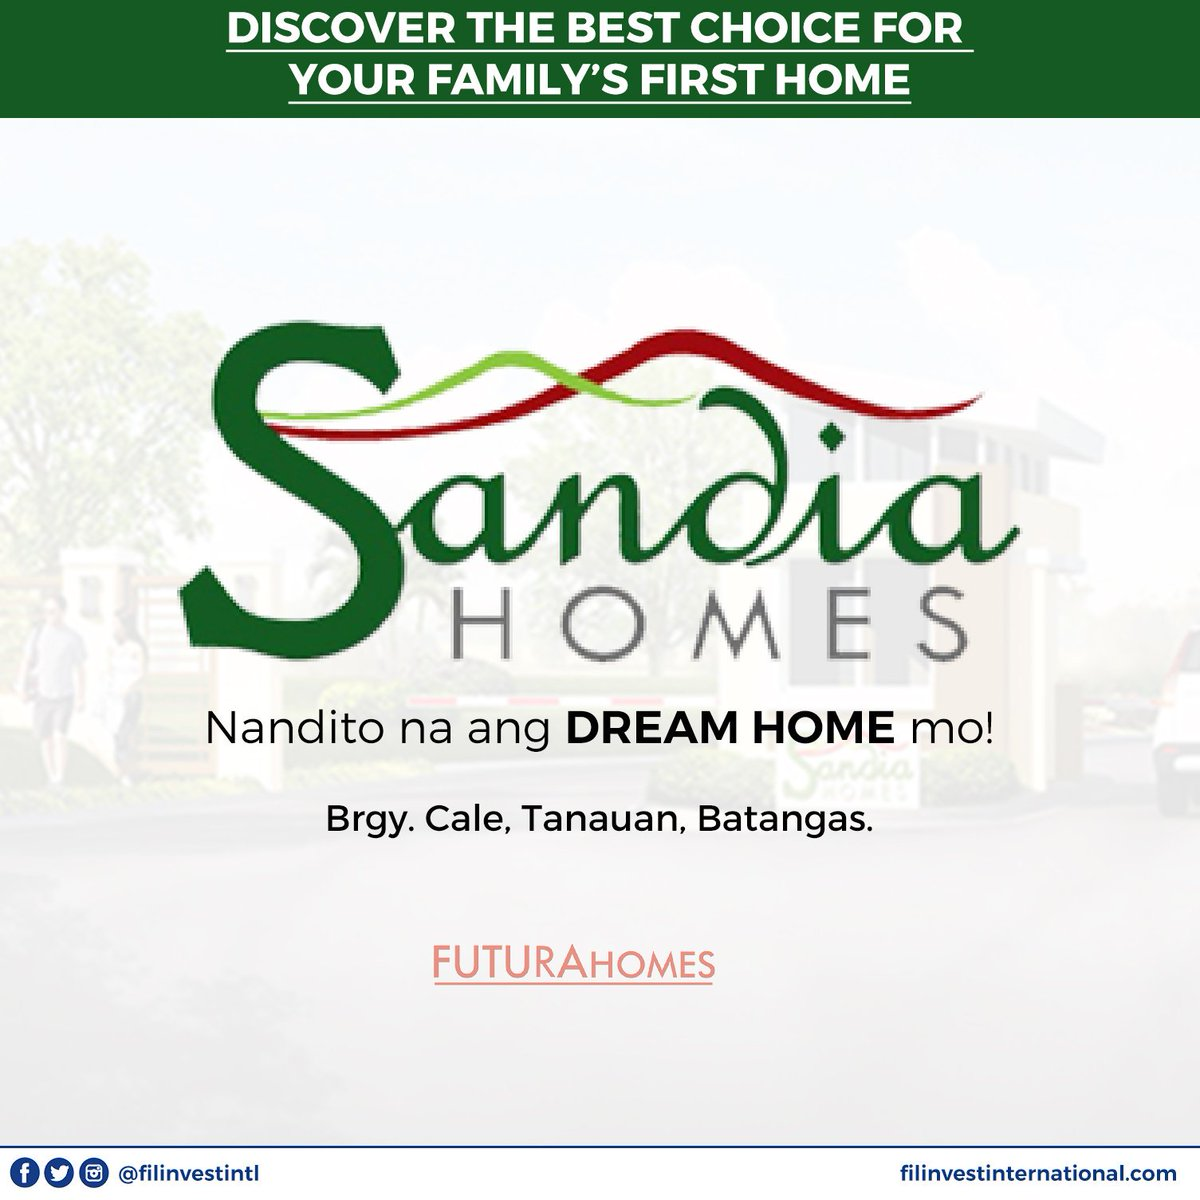 Located in a rapidly growing area and with complete amenities, Filinvest Sandia Homes is the best place to settle in Batangas especially if you want a place you can live permanently.  #FilinvestorInspires #Filinvest #FilinvestInternational #OFW #Investment #RealEstate https://t.co/Z4aZX8PbkO